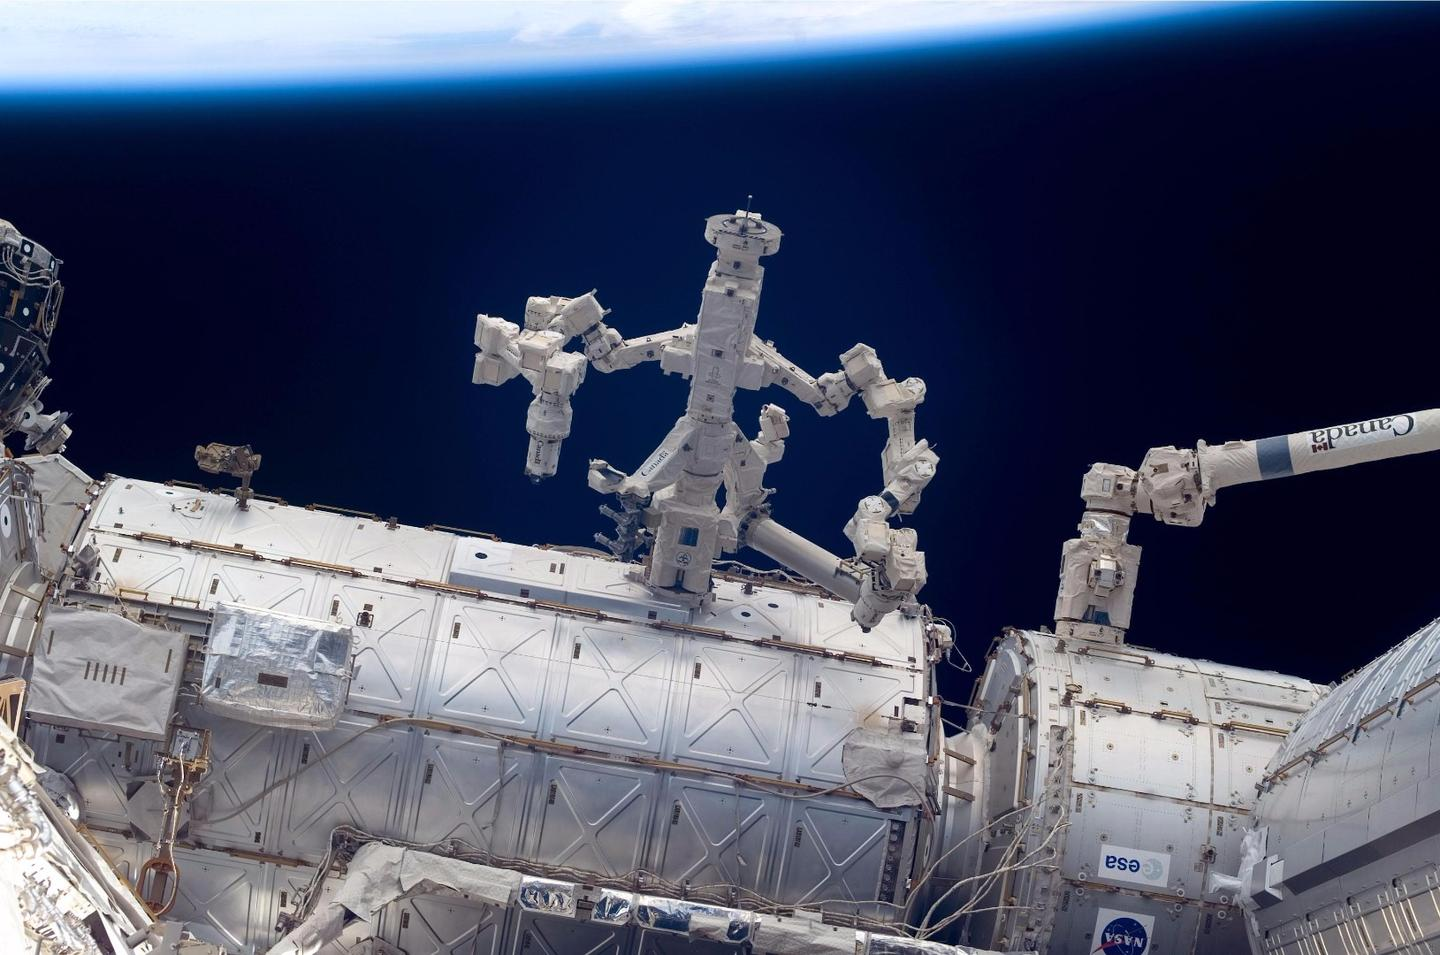 Dextre is the third Canadian robotic arm to be installed on the ISS